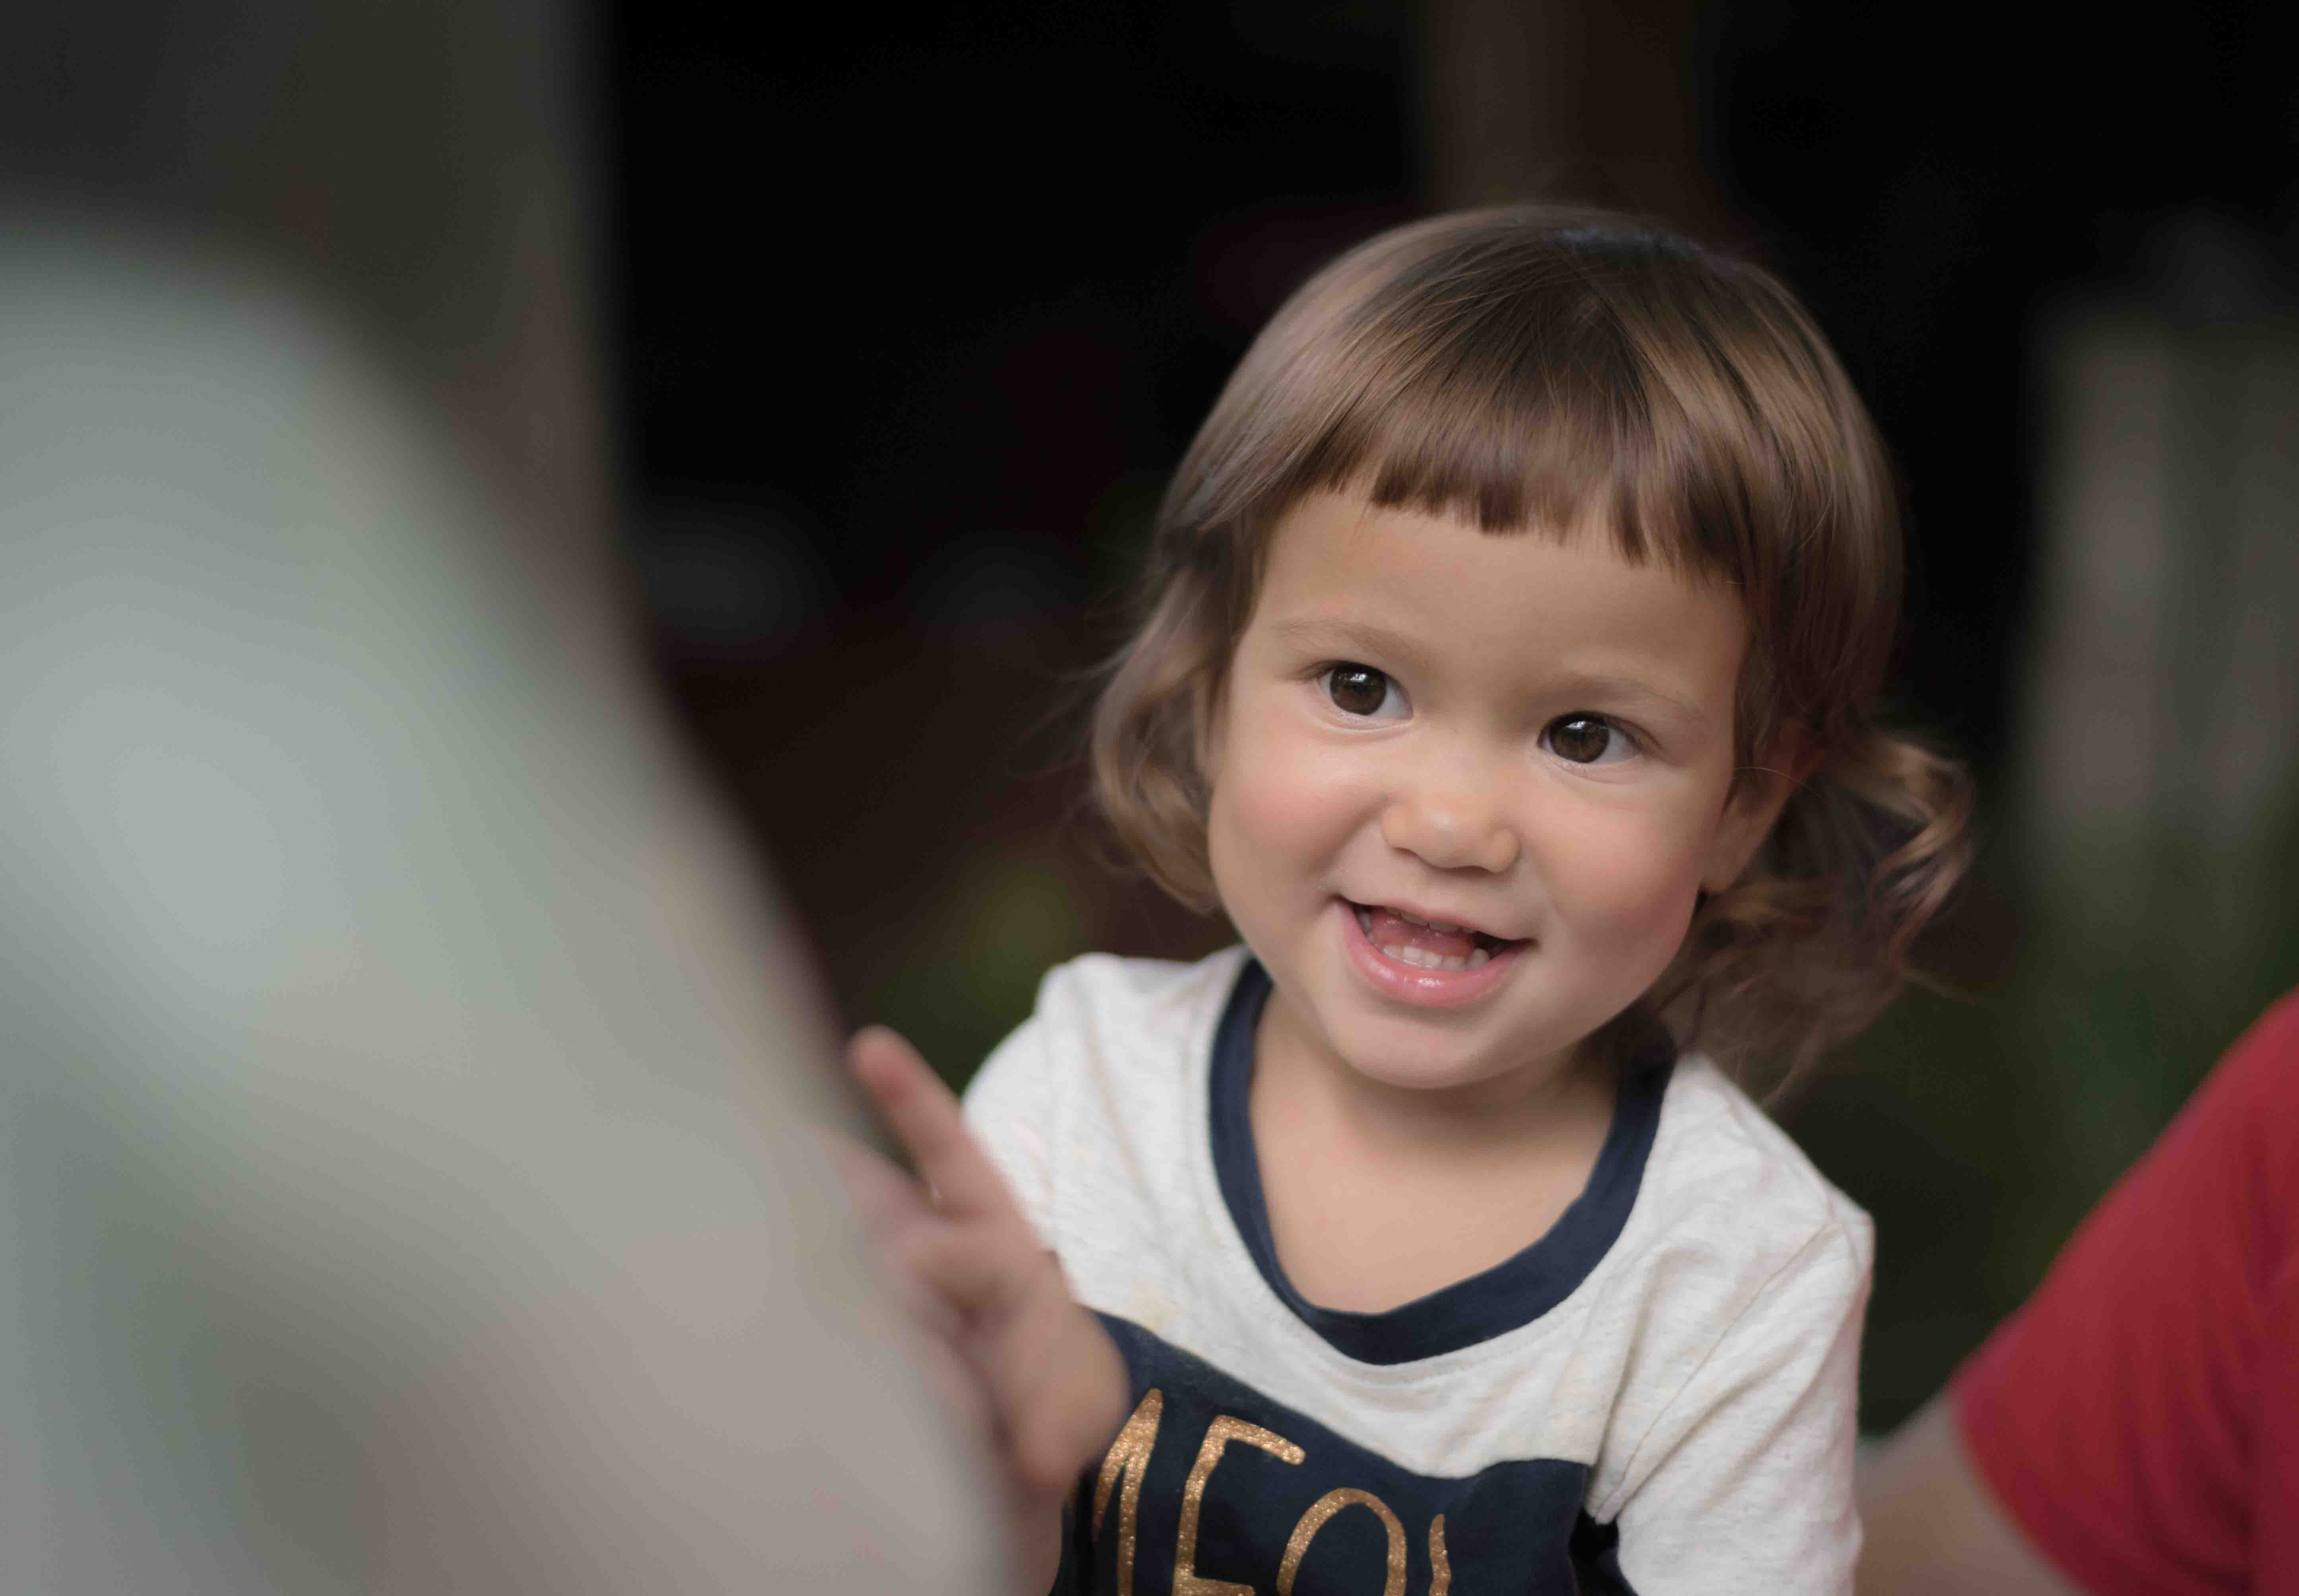 How to Capture Natural Smiles Out of Kids (And Adults!)